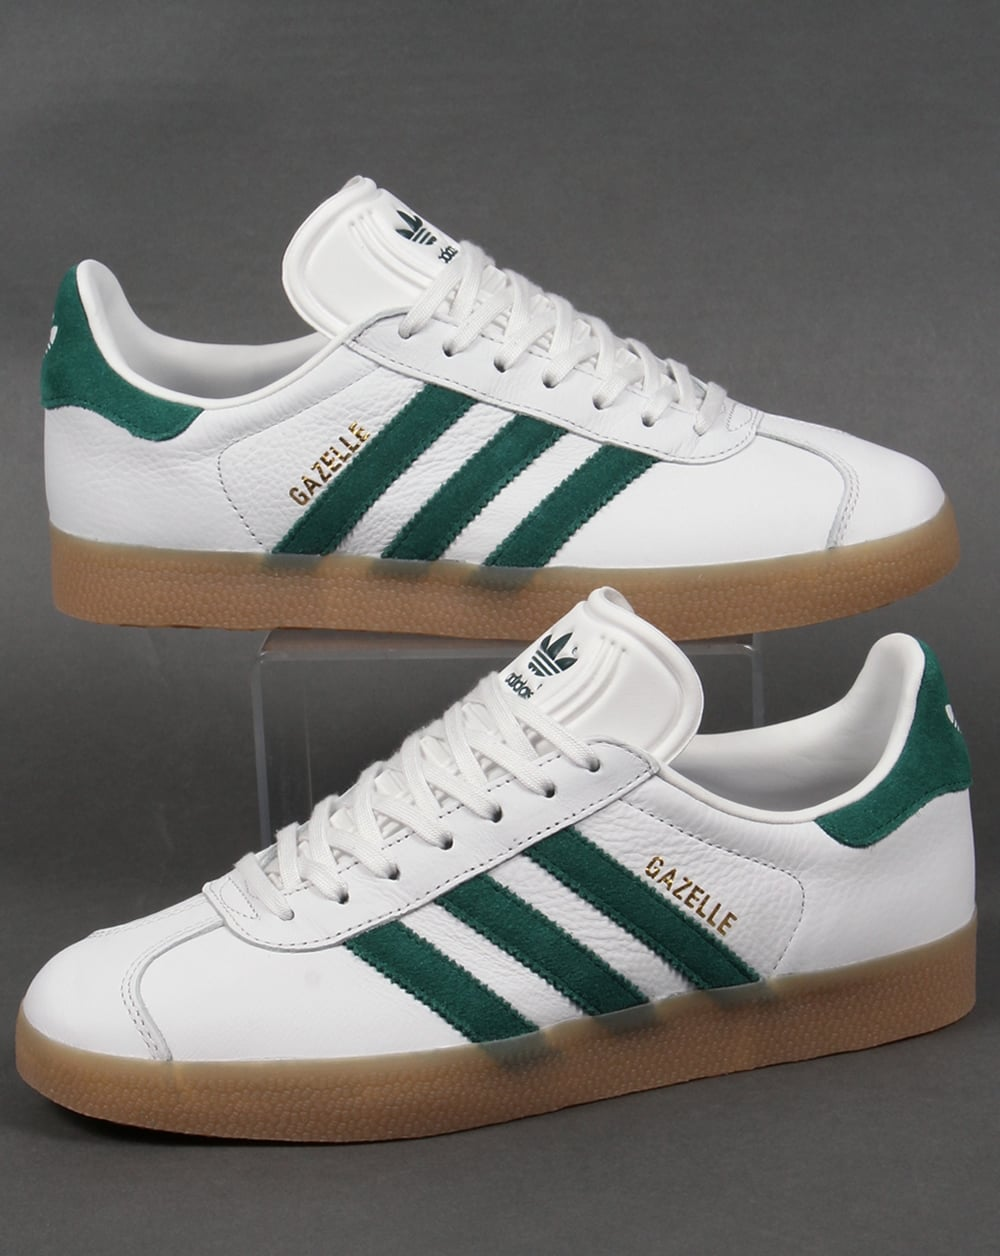 adidas Trainers Adidas Gazelle Leather Trainers in White Green Gum 44a3578dc